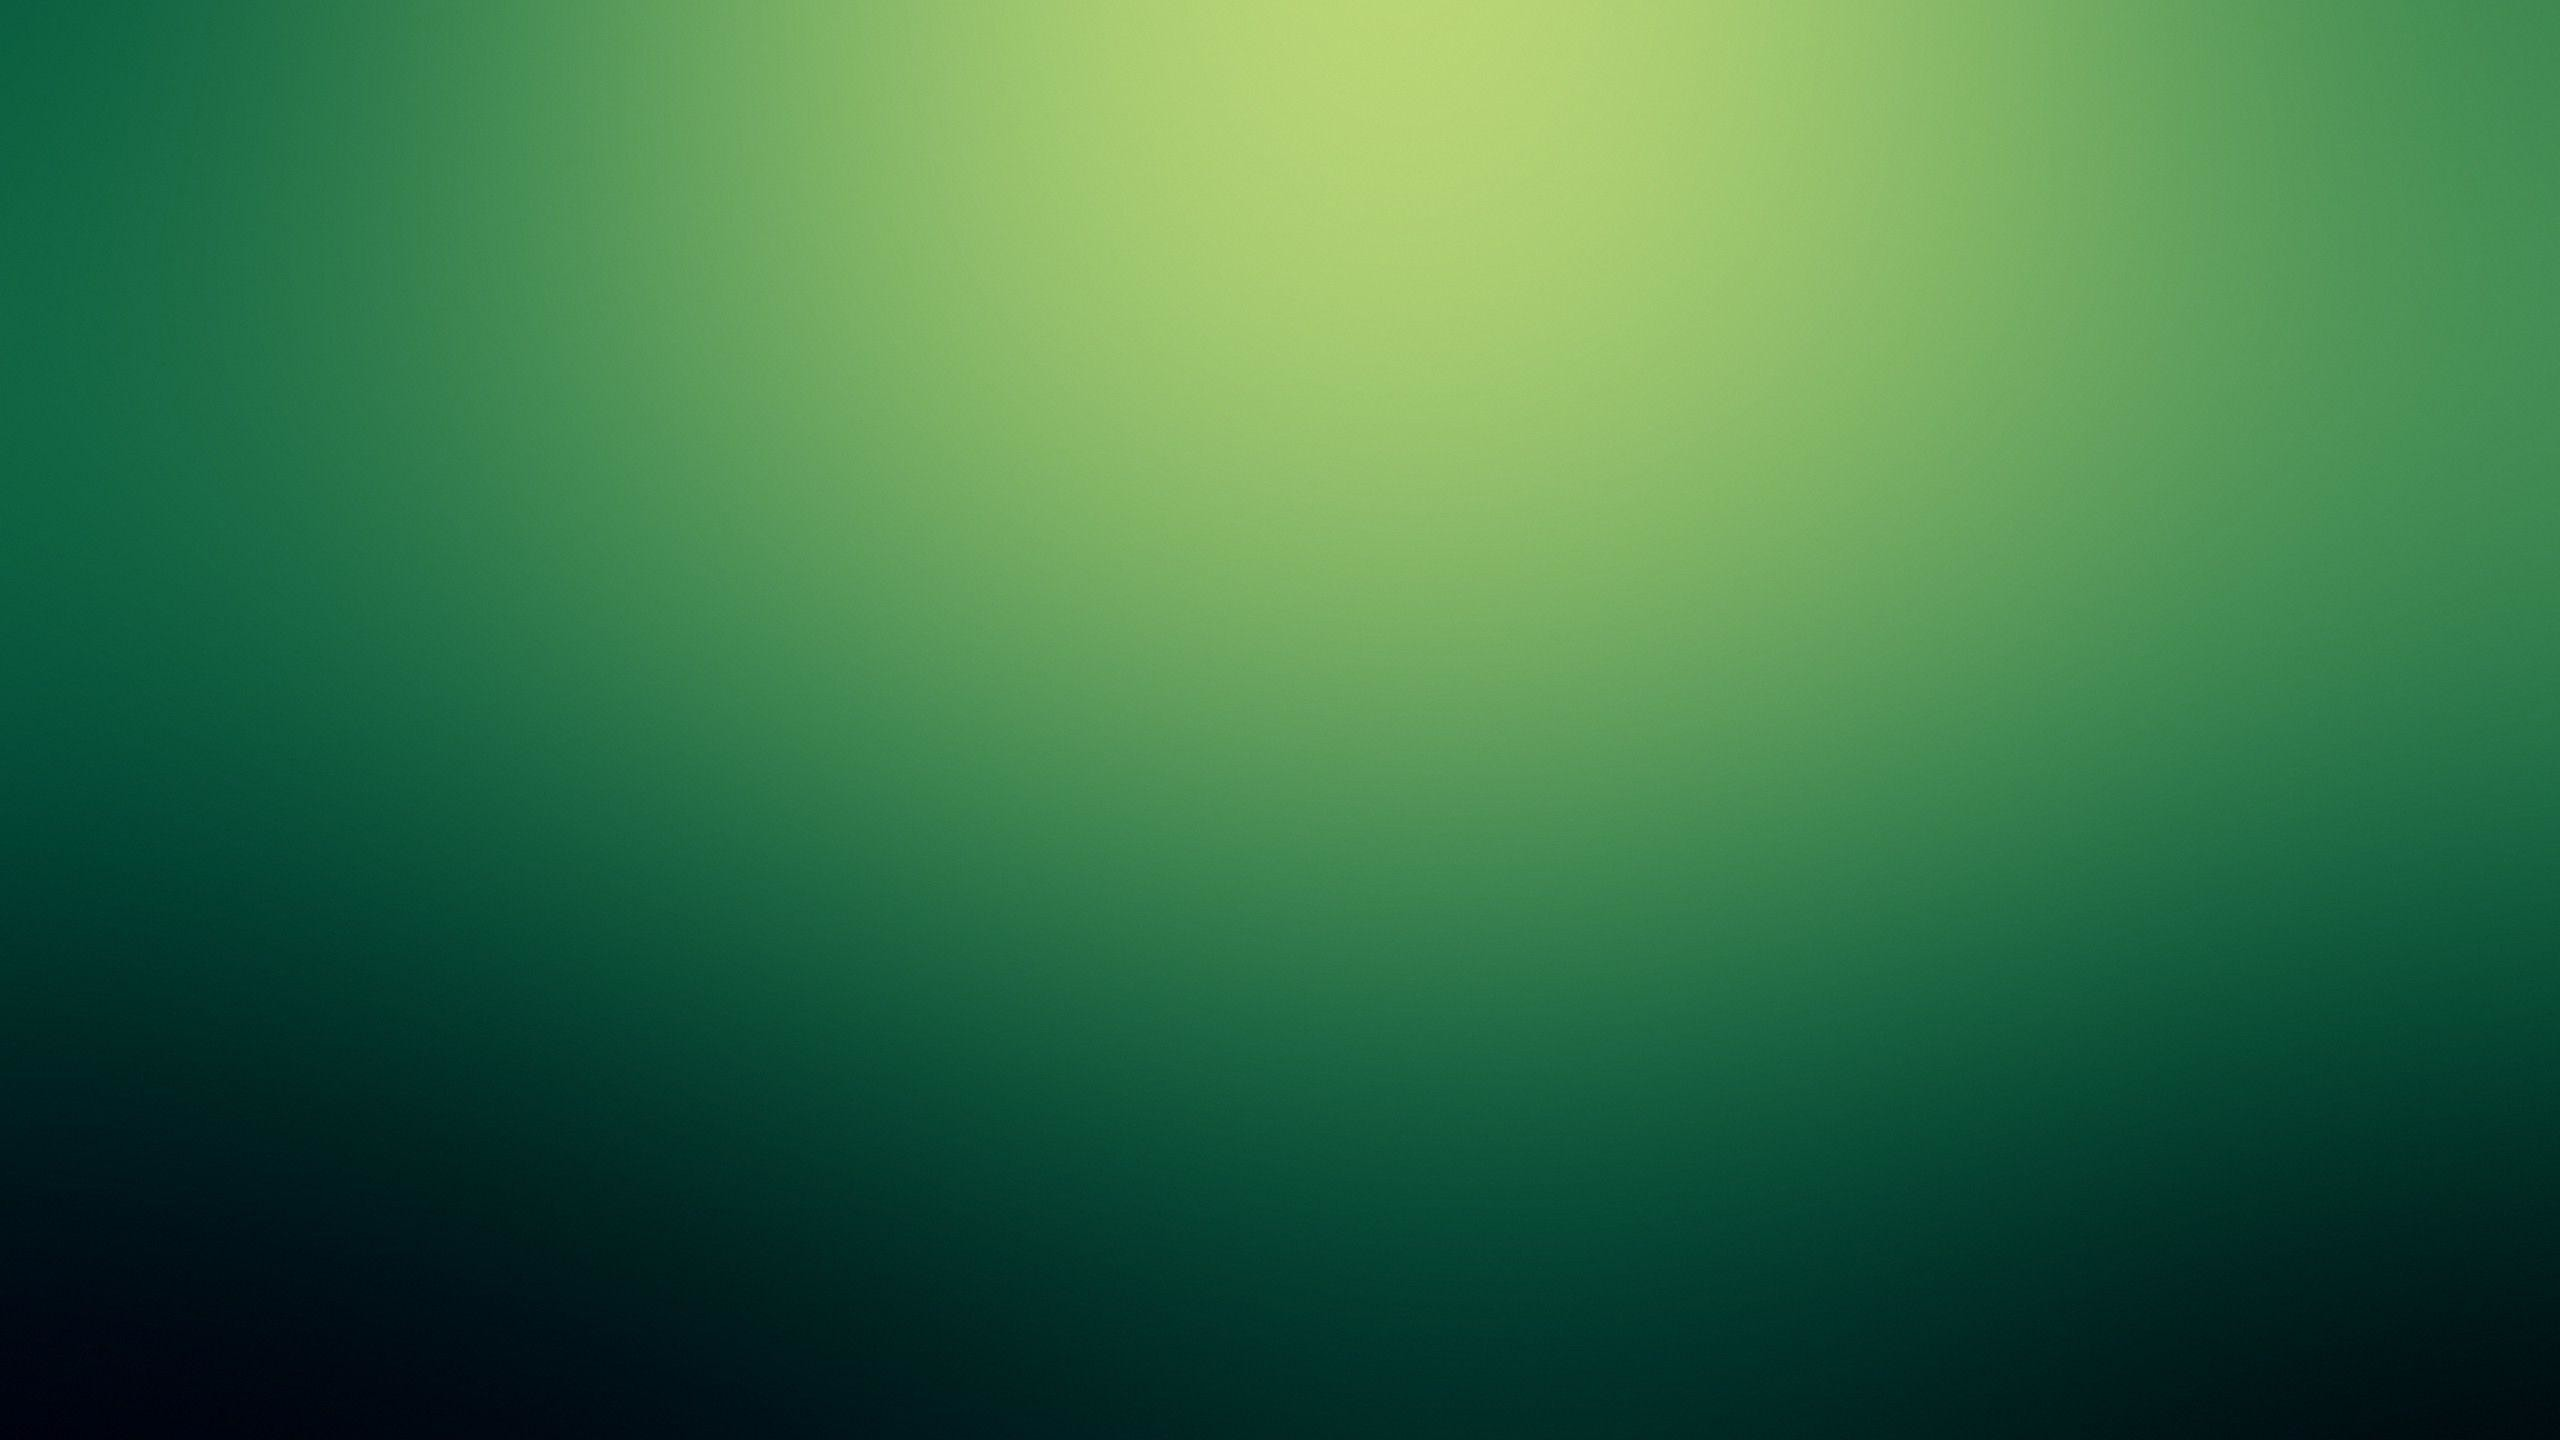 2560x1440 Color Gradient Wallpaper HD, Most Beautiful HDQ Color Gradient HD .